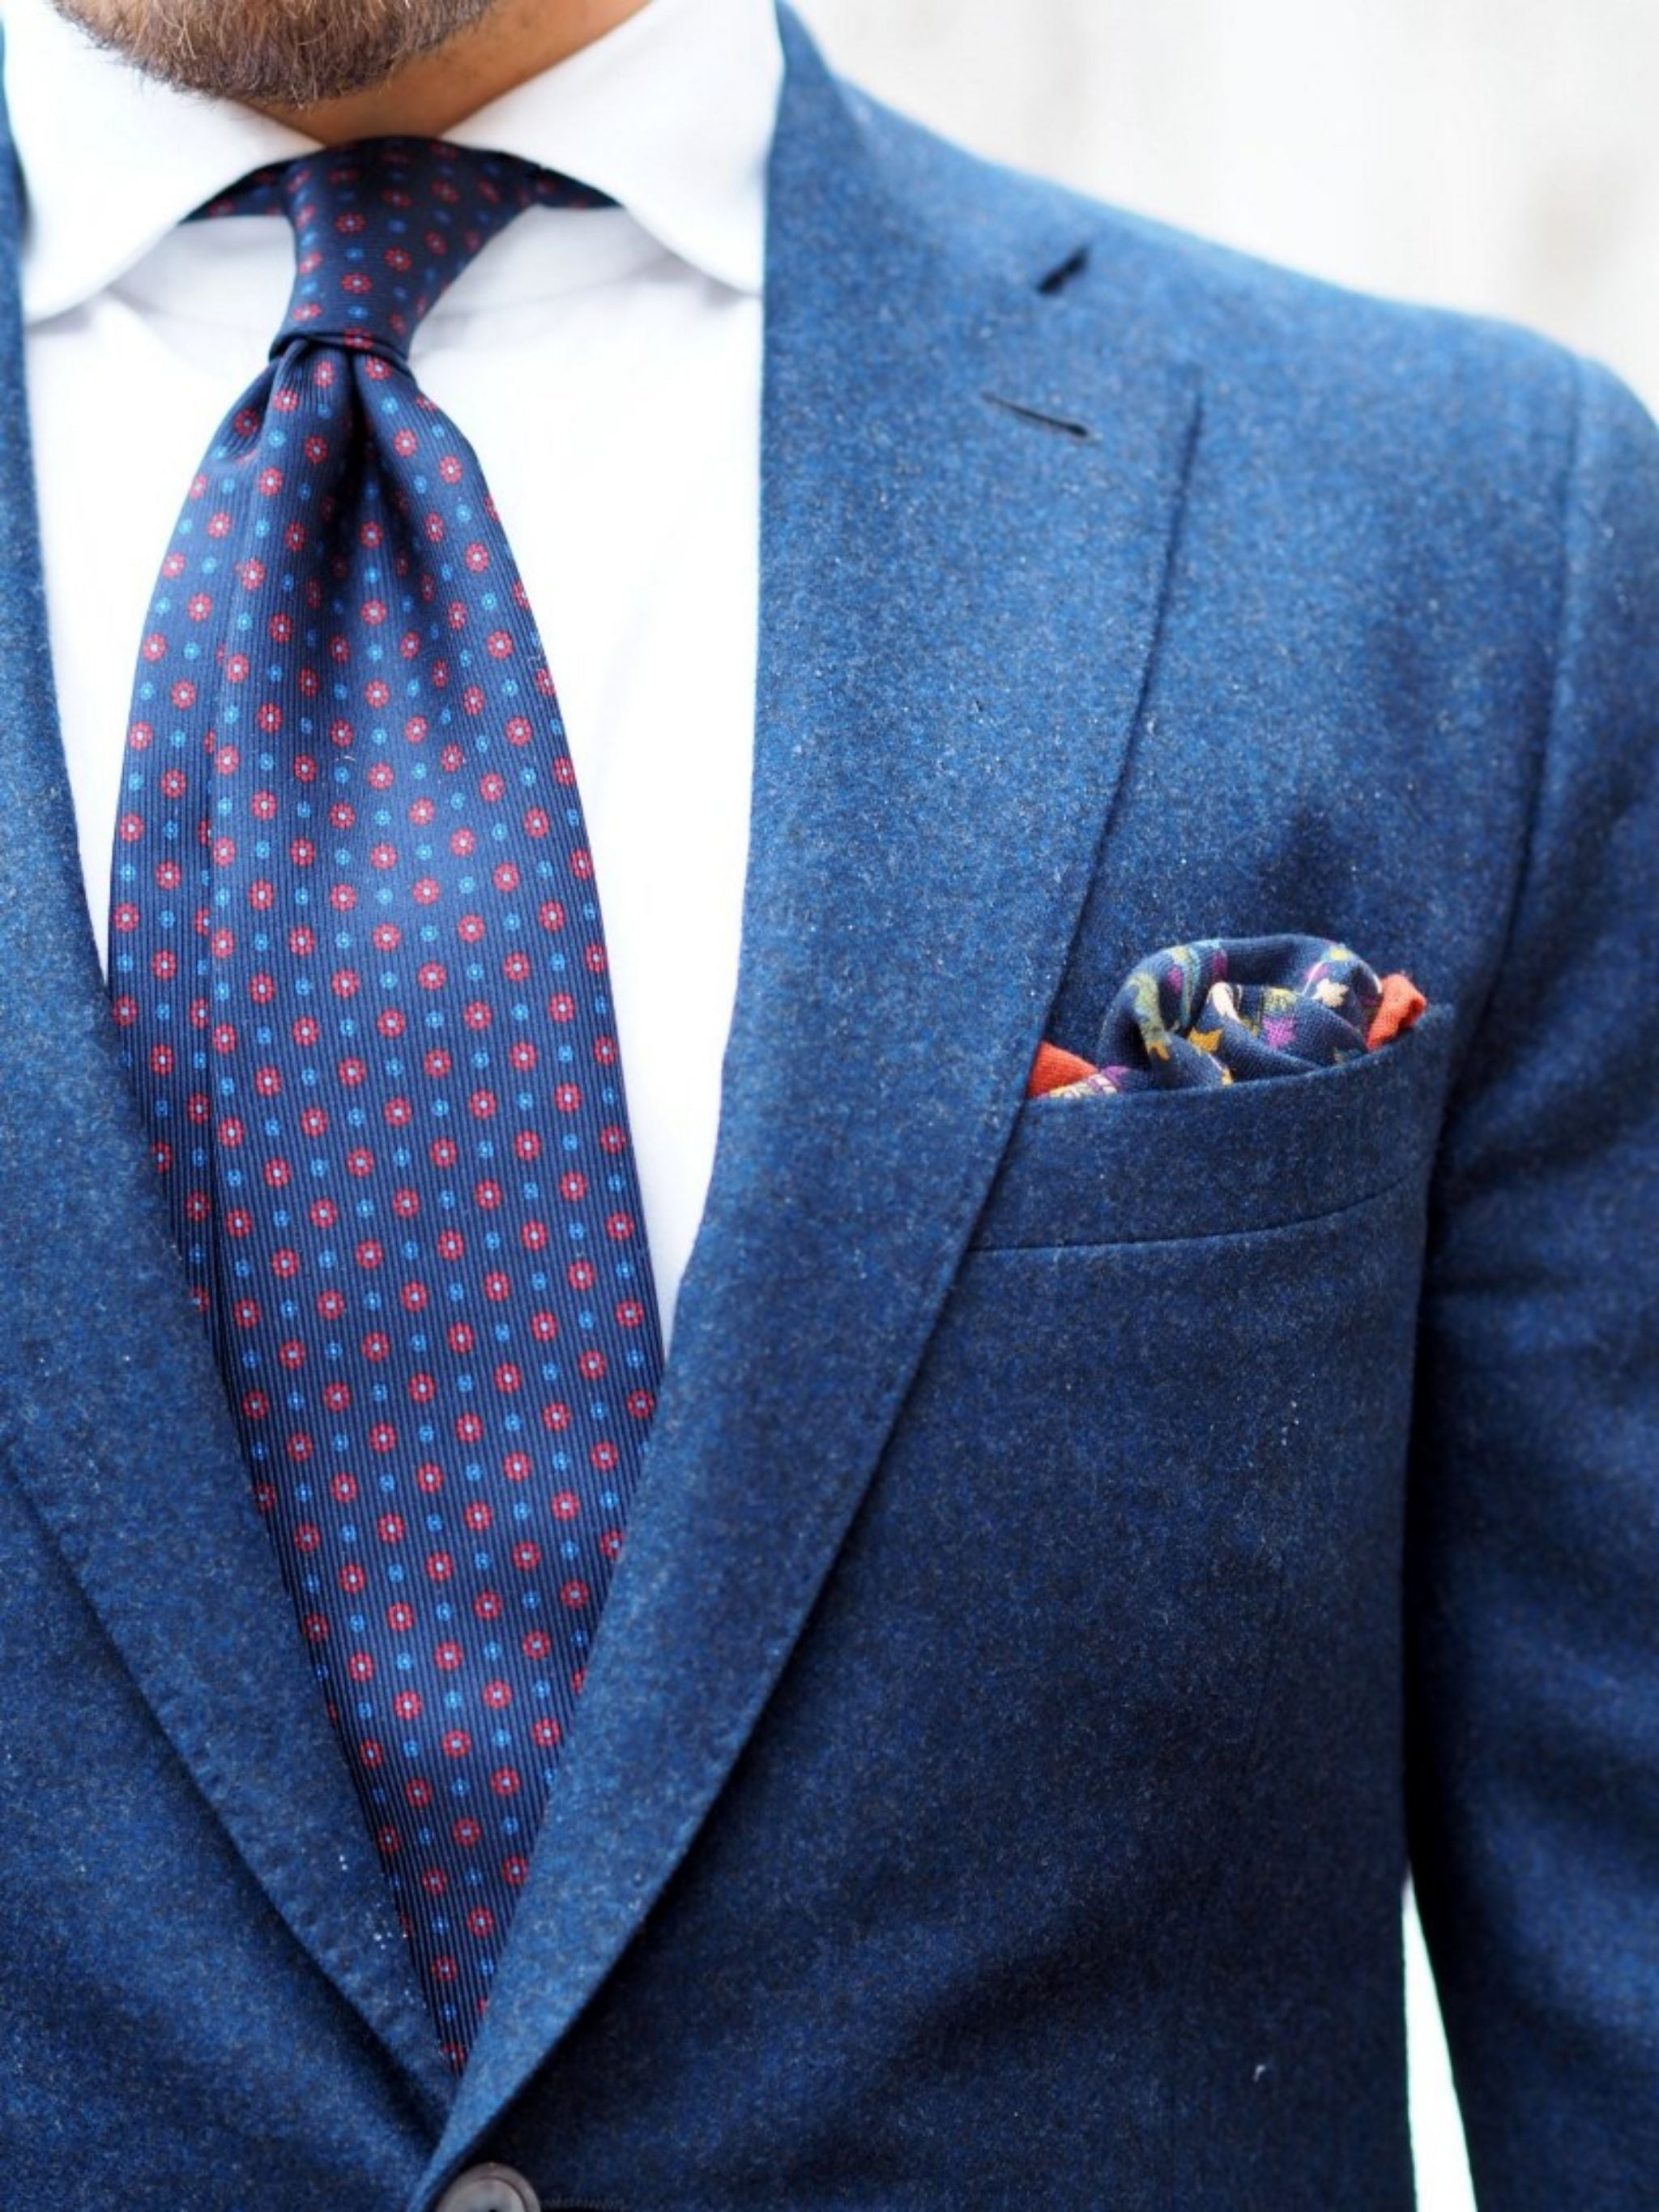 Autumnal business casual outfits - The navy blue blazer with DLA tie details